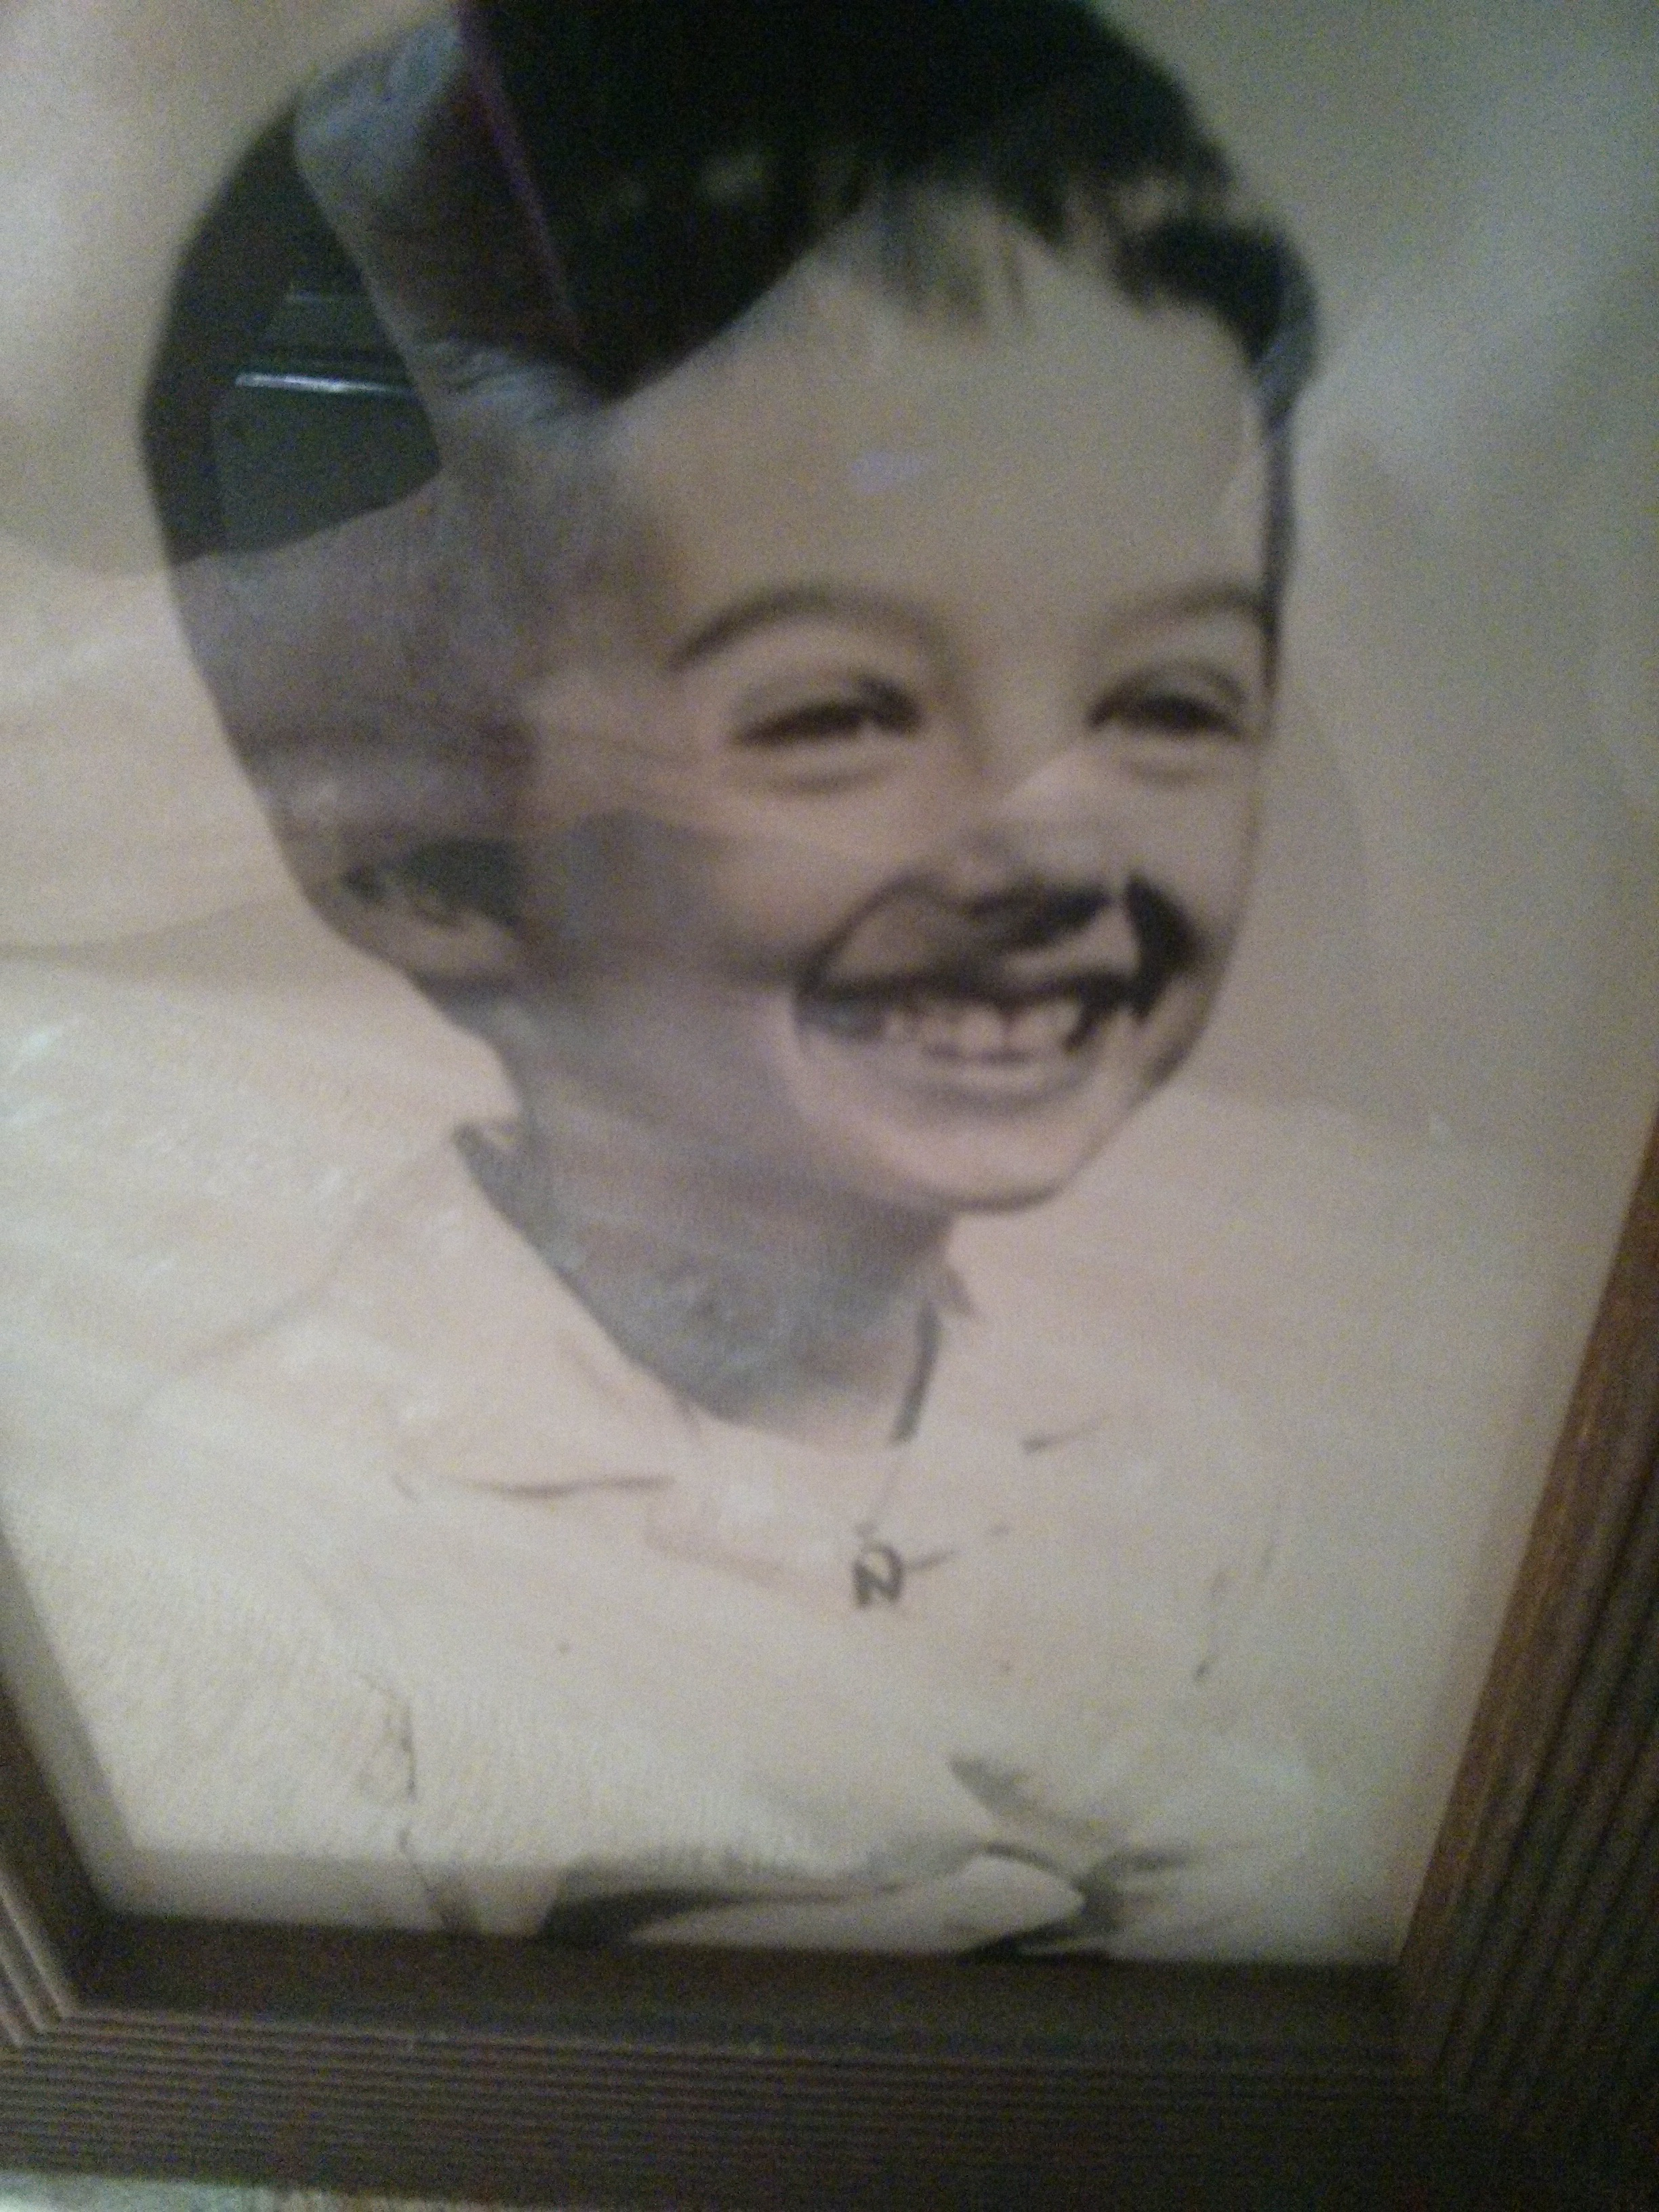 me as a small child